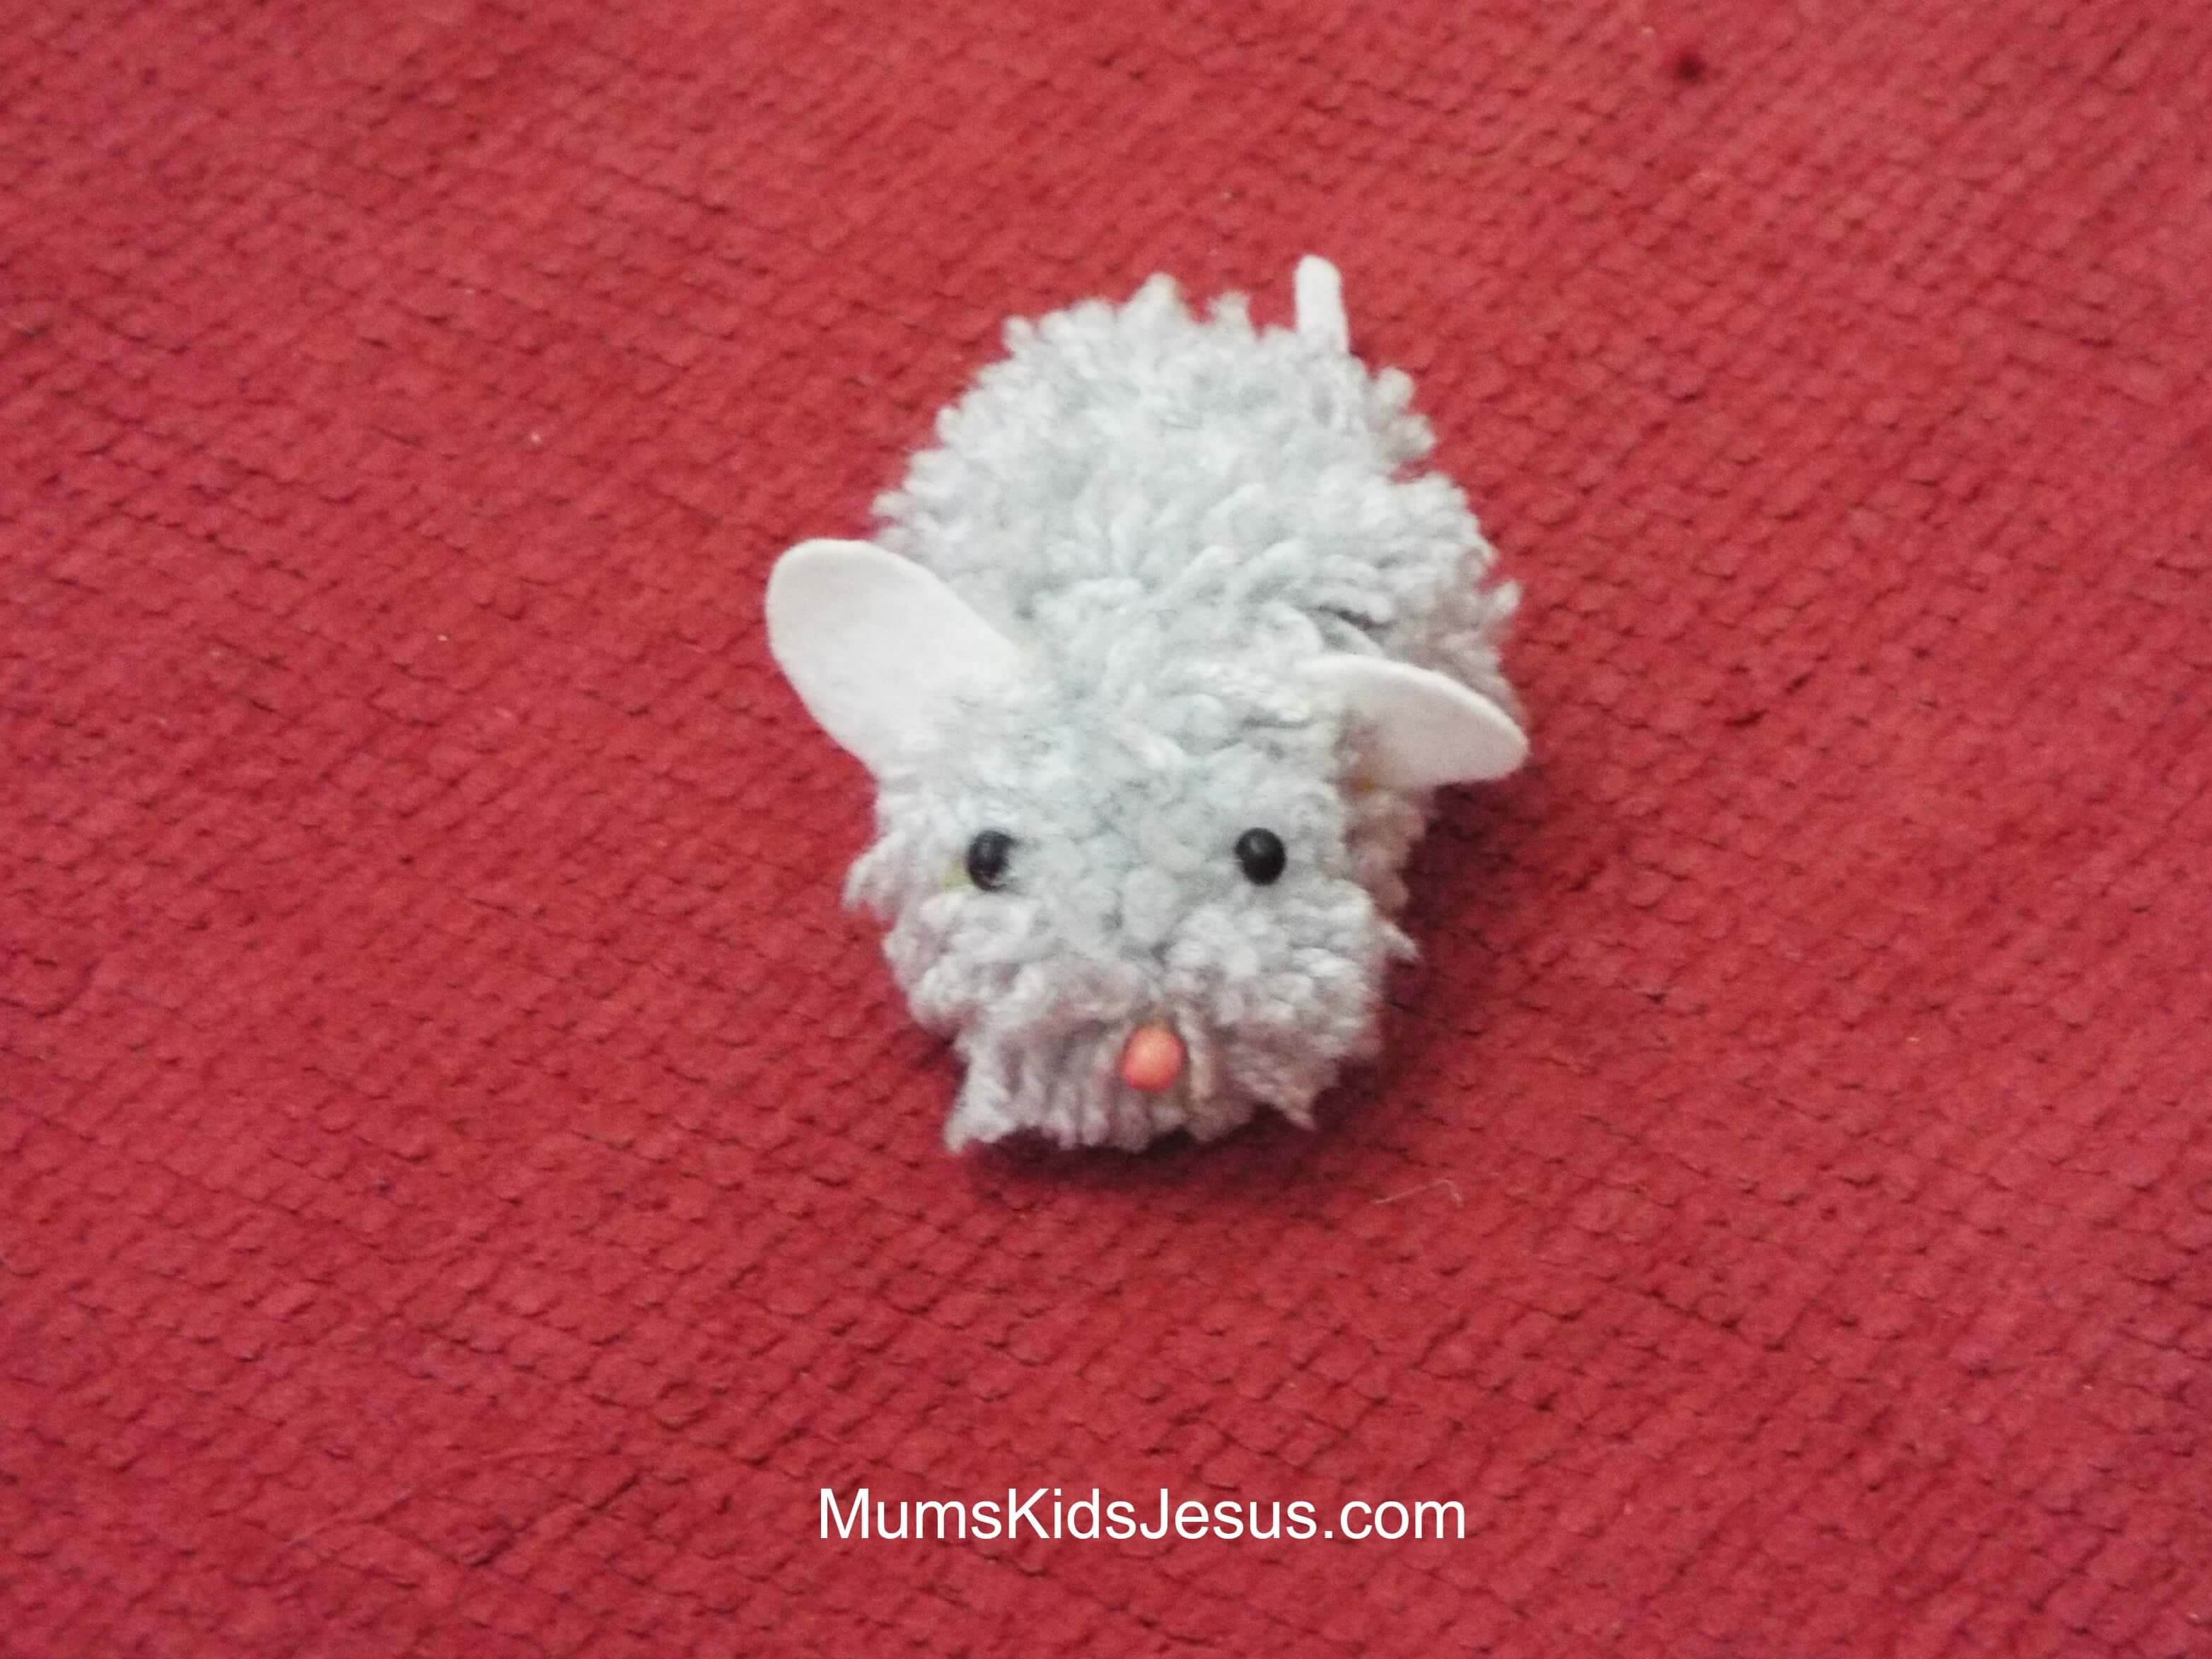 How to Make a Pom Pom in 5 Minutes (And Make a Really Cute Pom Pom Mouse)